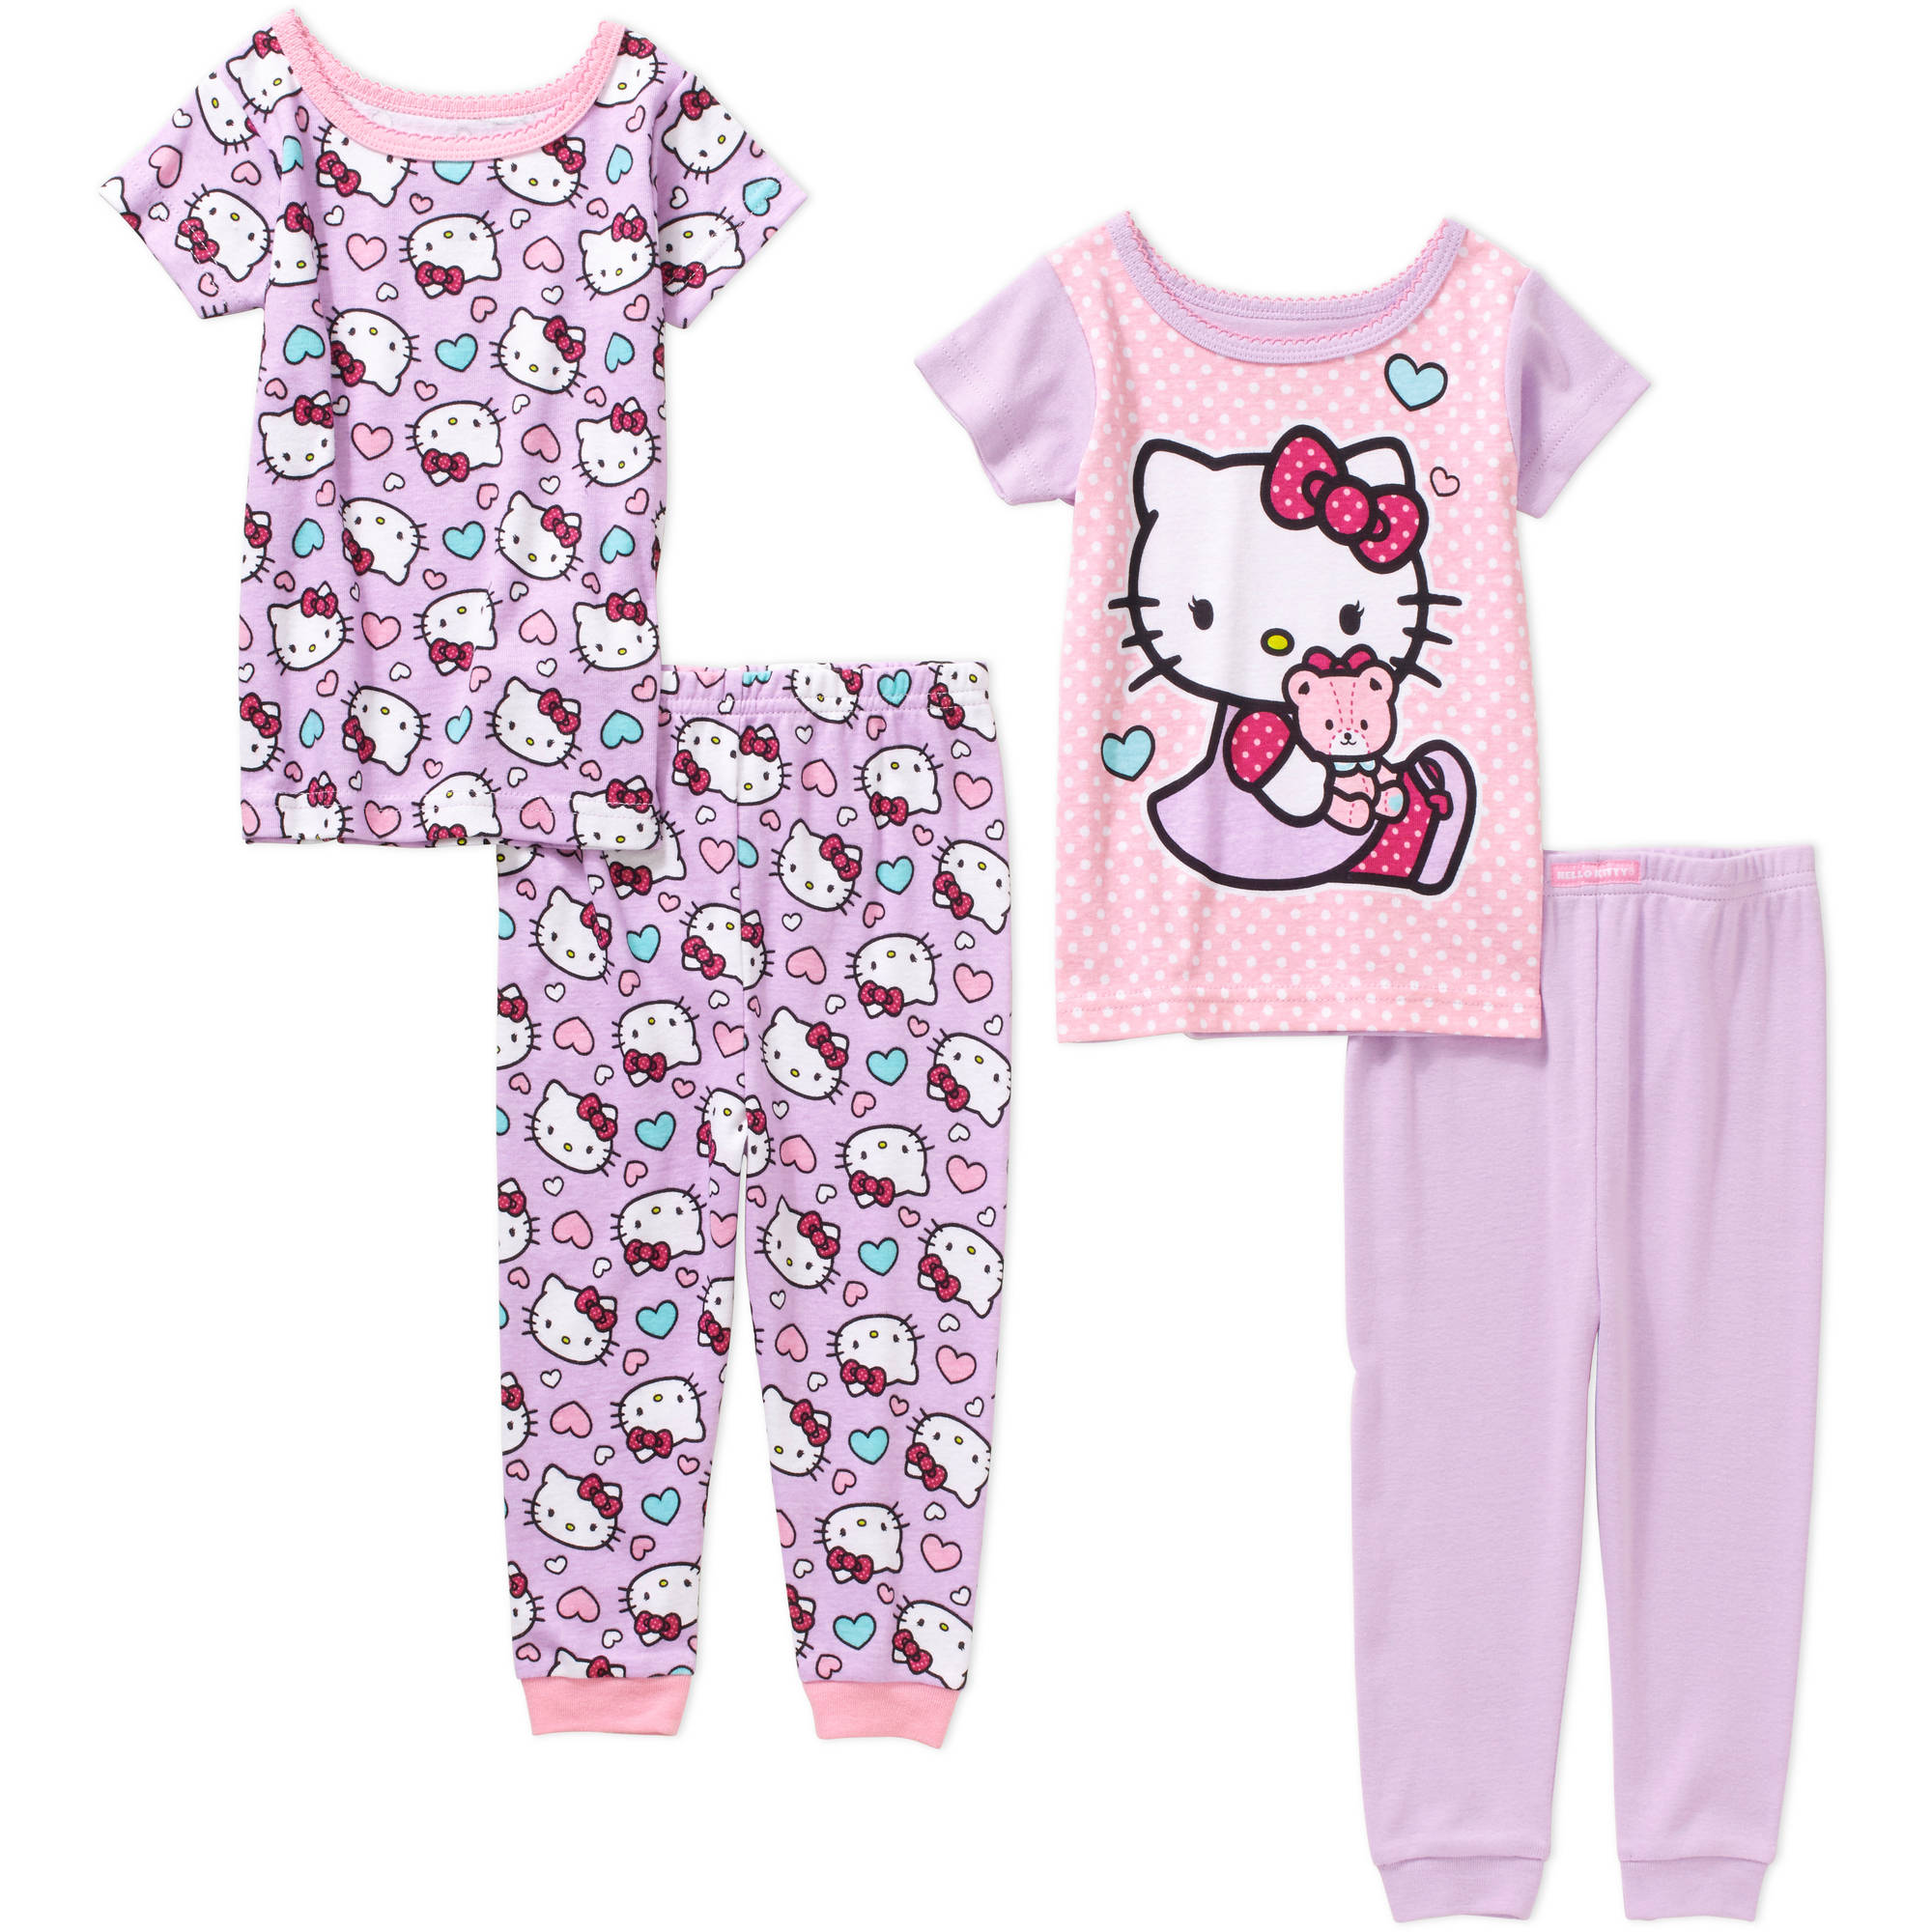 Hello Kitty Baby Infant Girl Cotton Tight Fit Short Sleeve Pajamas, 4-Pieces